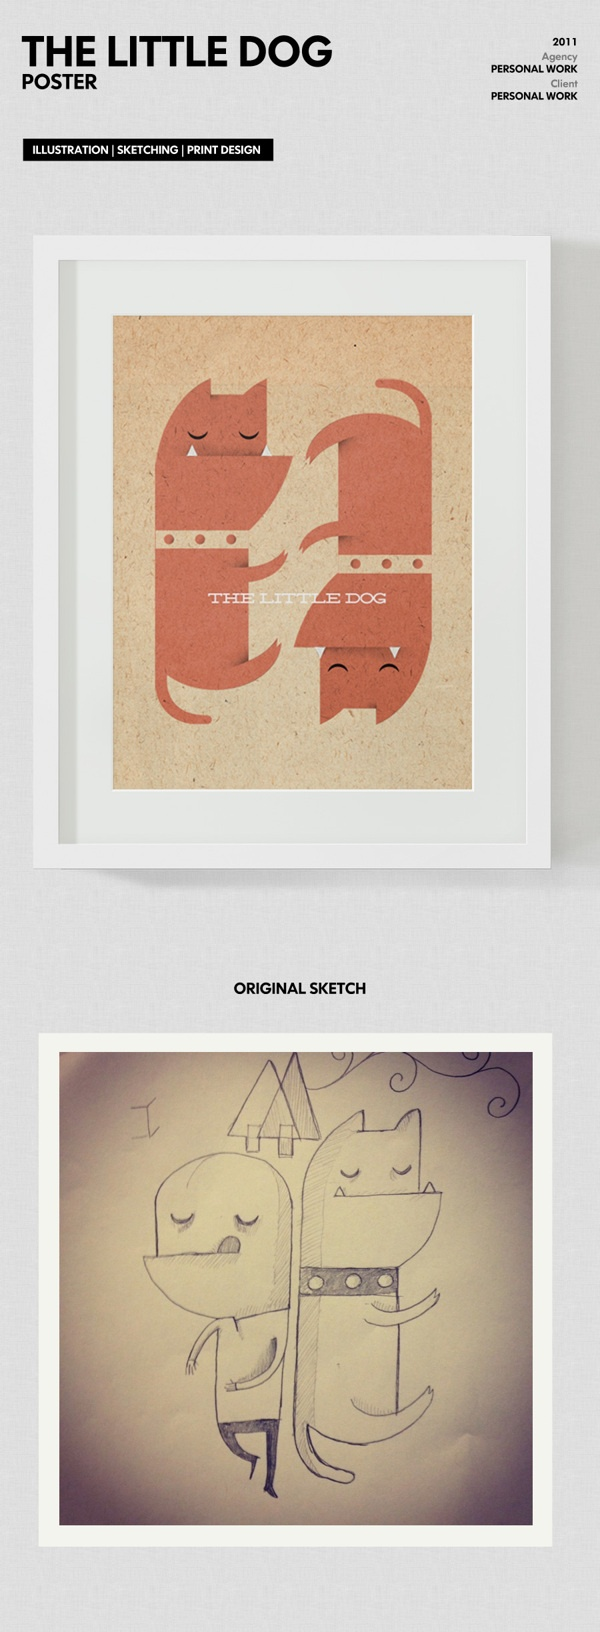 The Little Dog by Luca Armari, via Behance